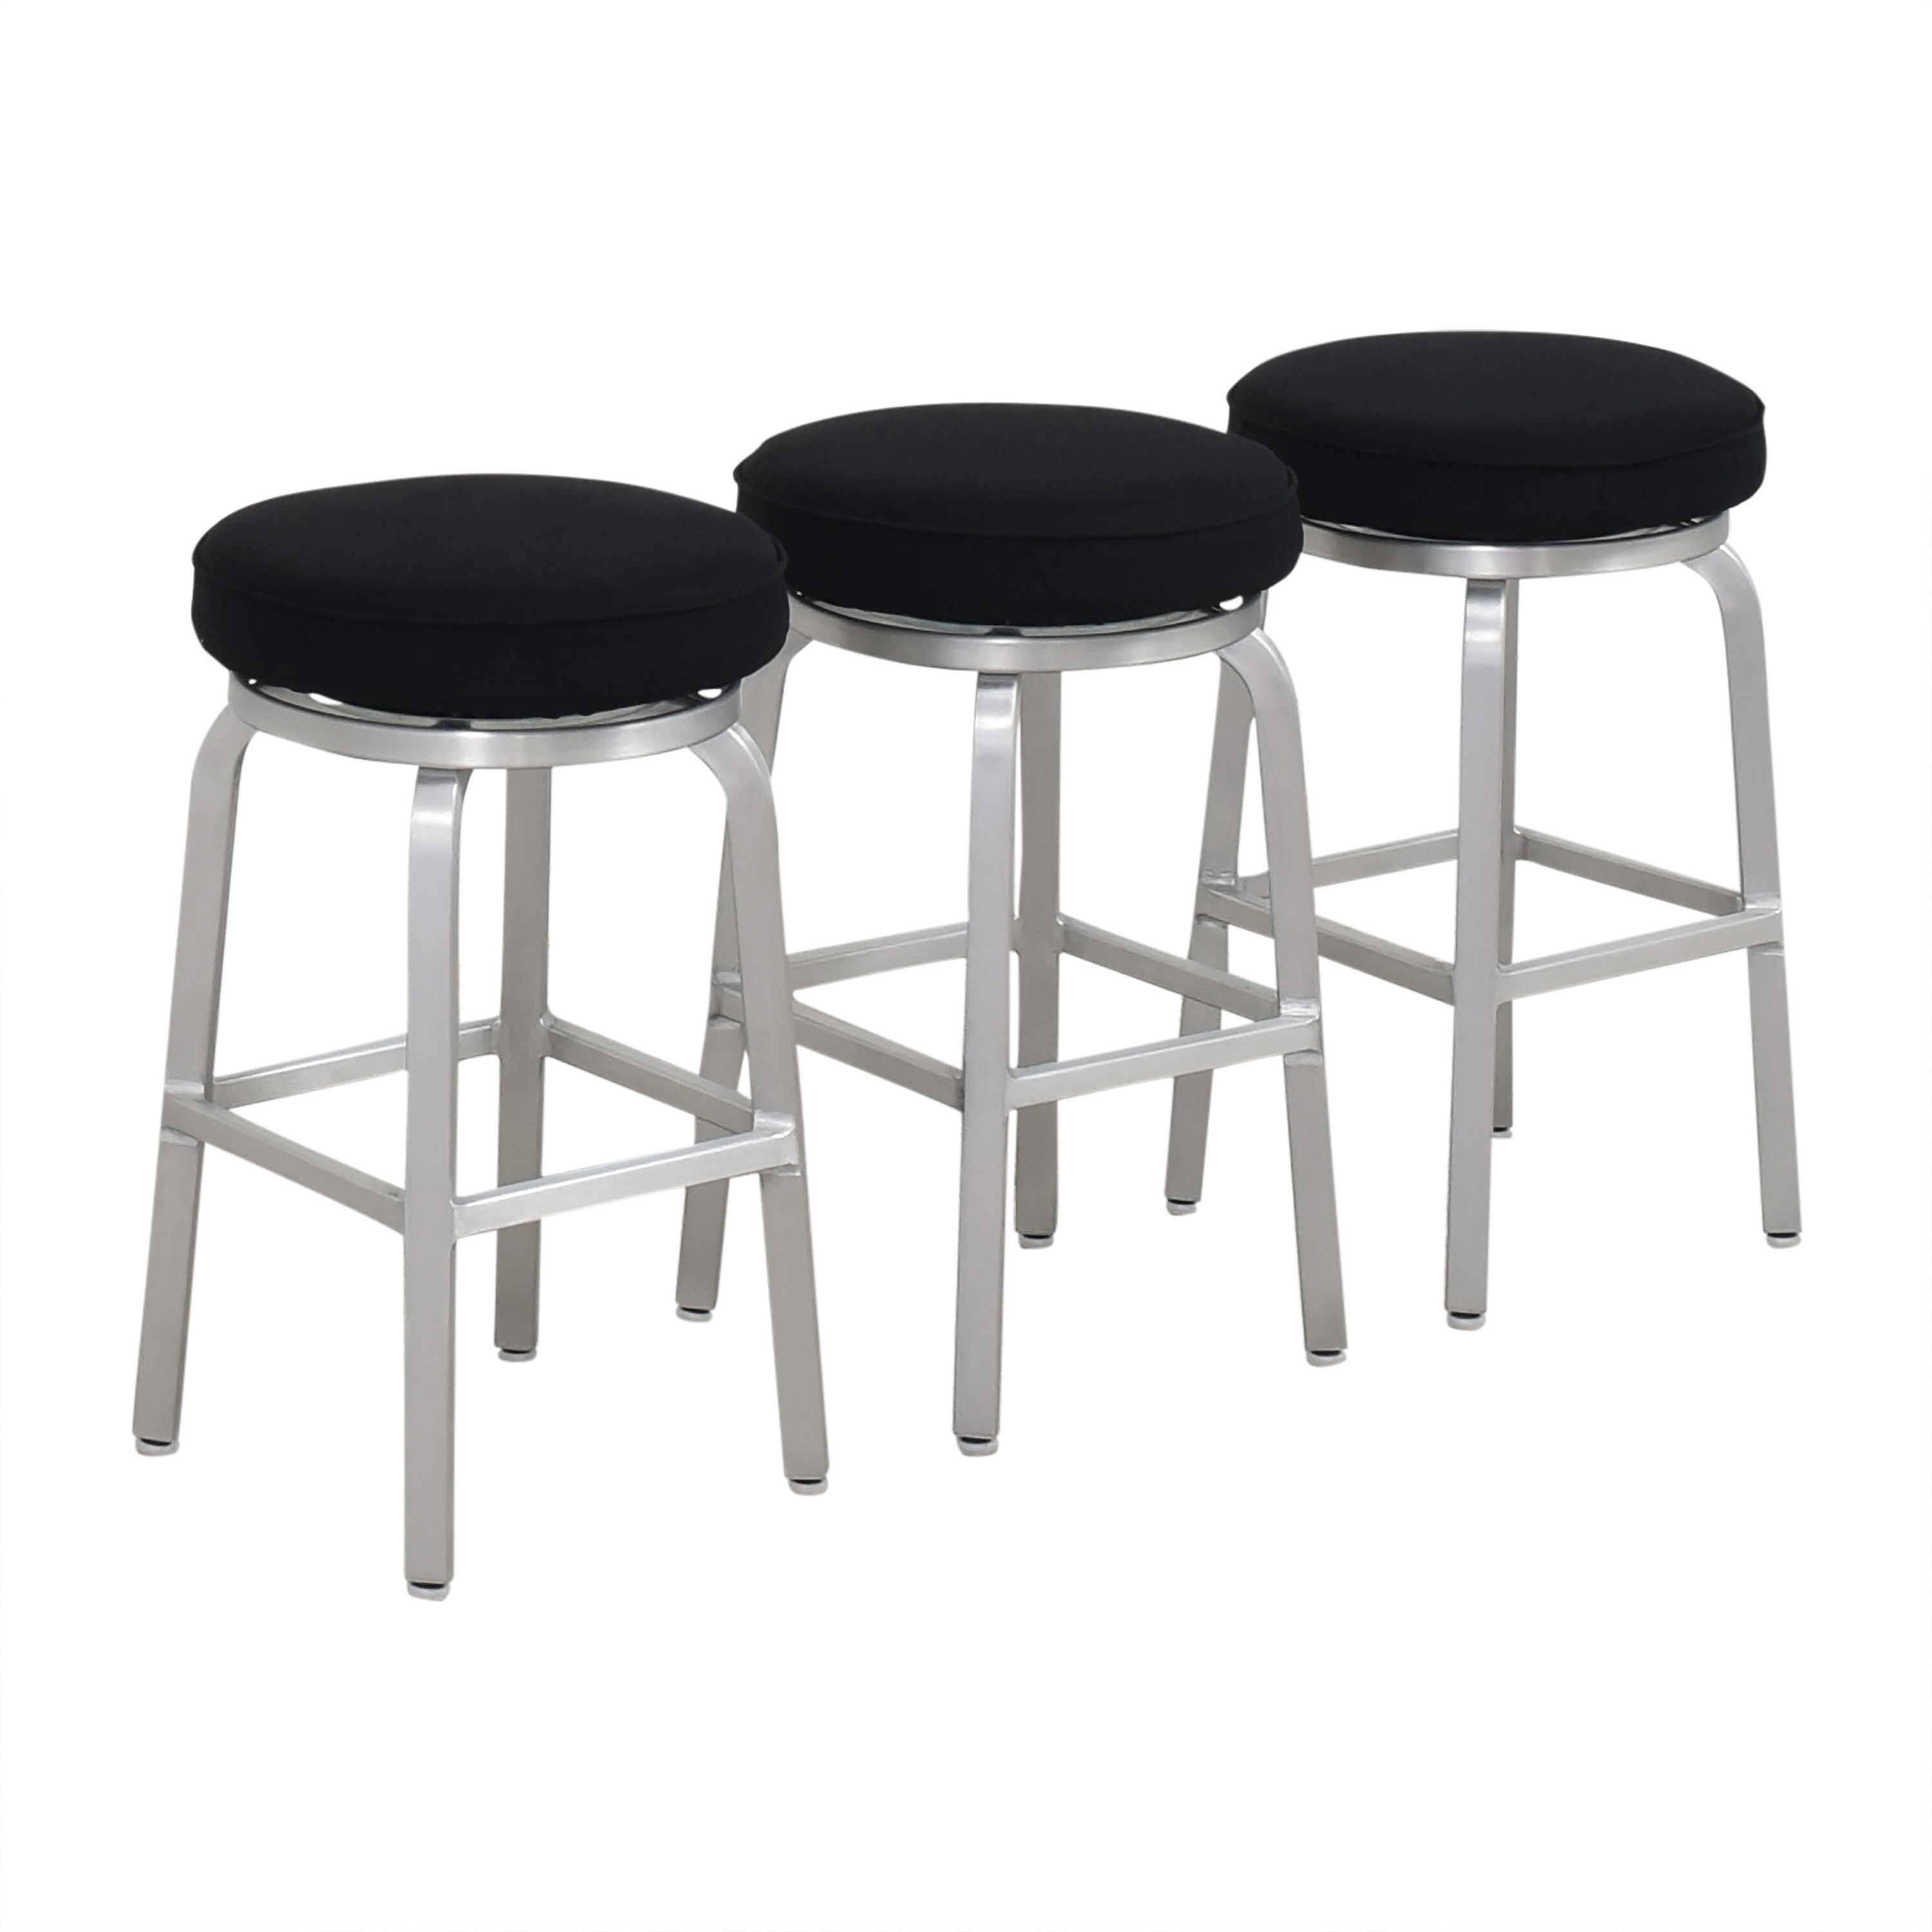 Crate & Barrel Crate & Barrel Spin Swivel Backless Counter Stools